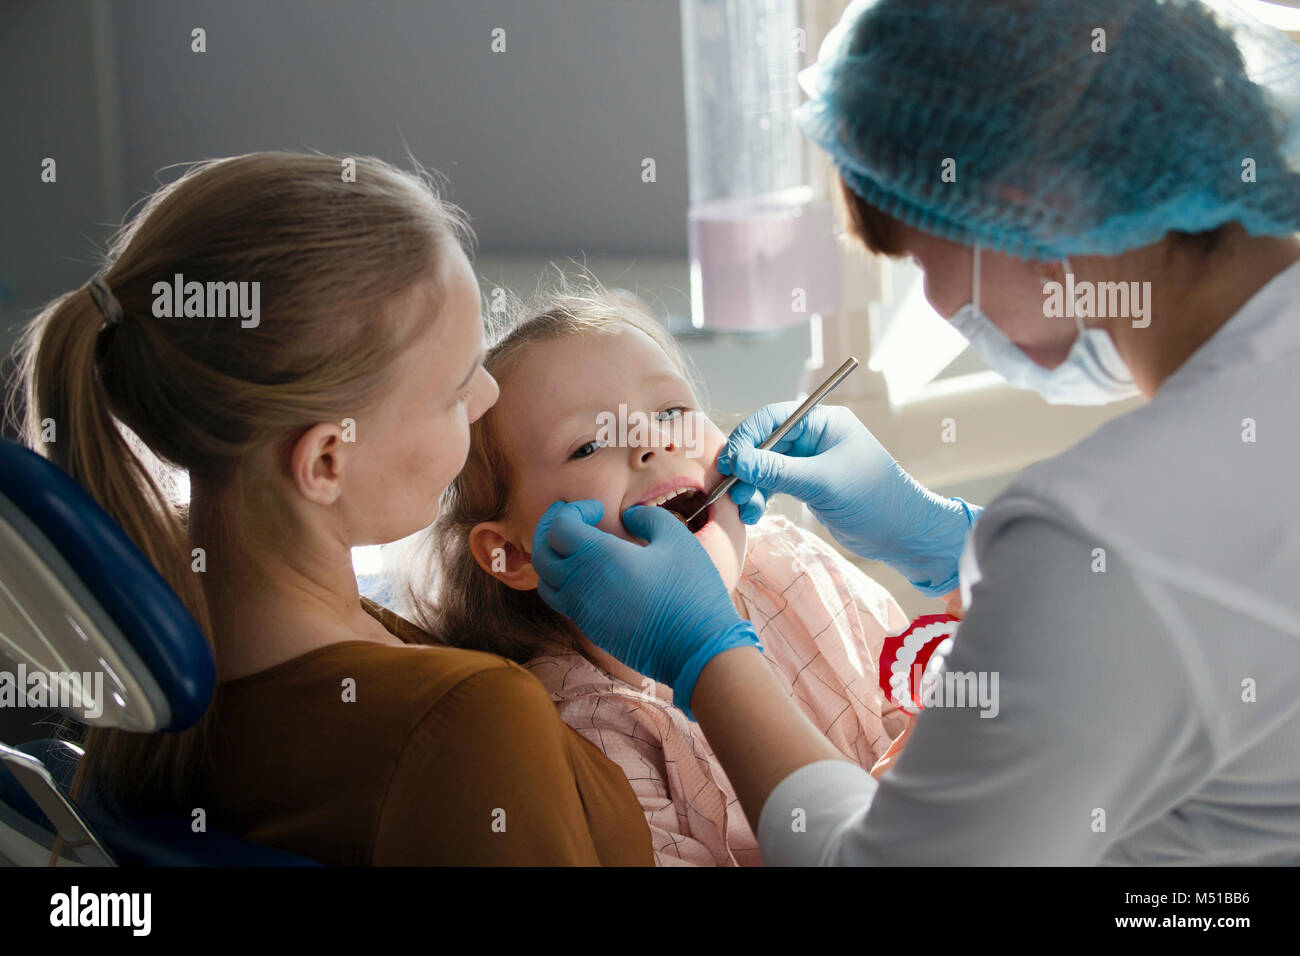 Little girl with mommy in dentist room - doctor examines the girl's teeth - Stock Image